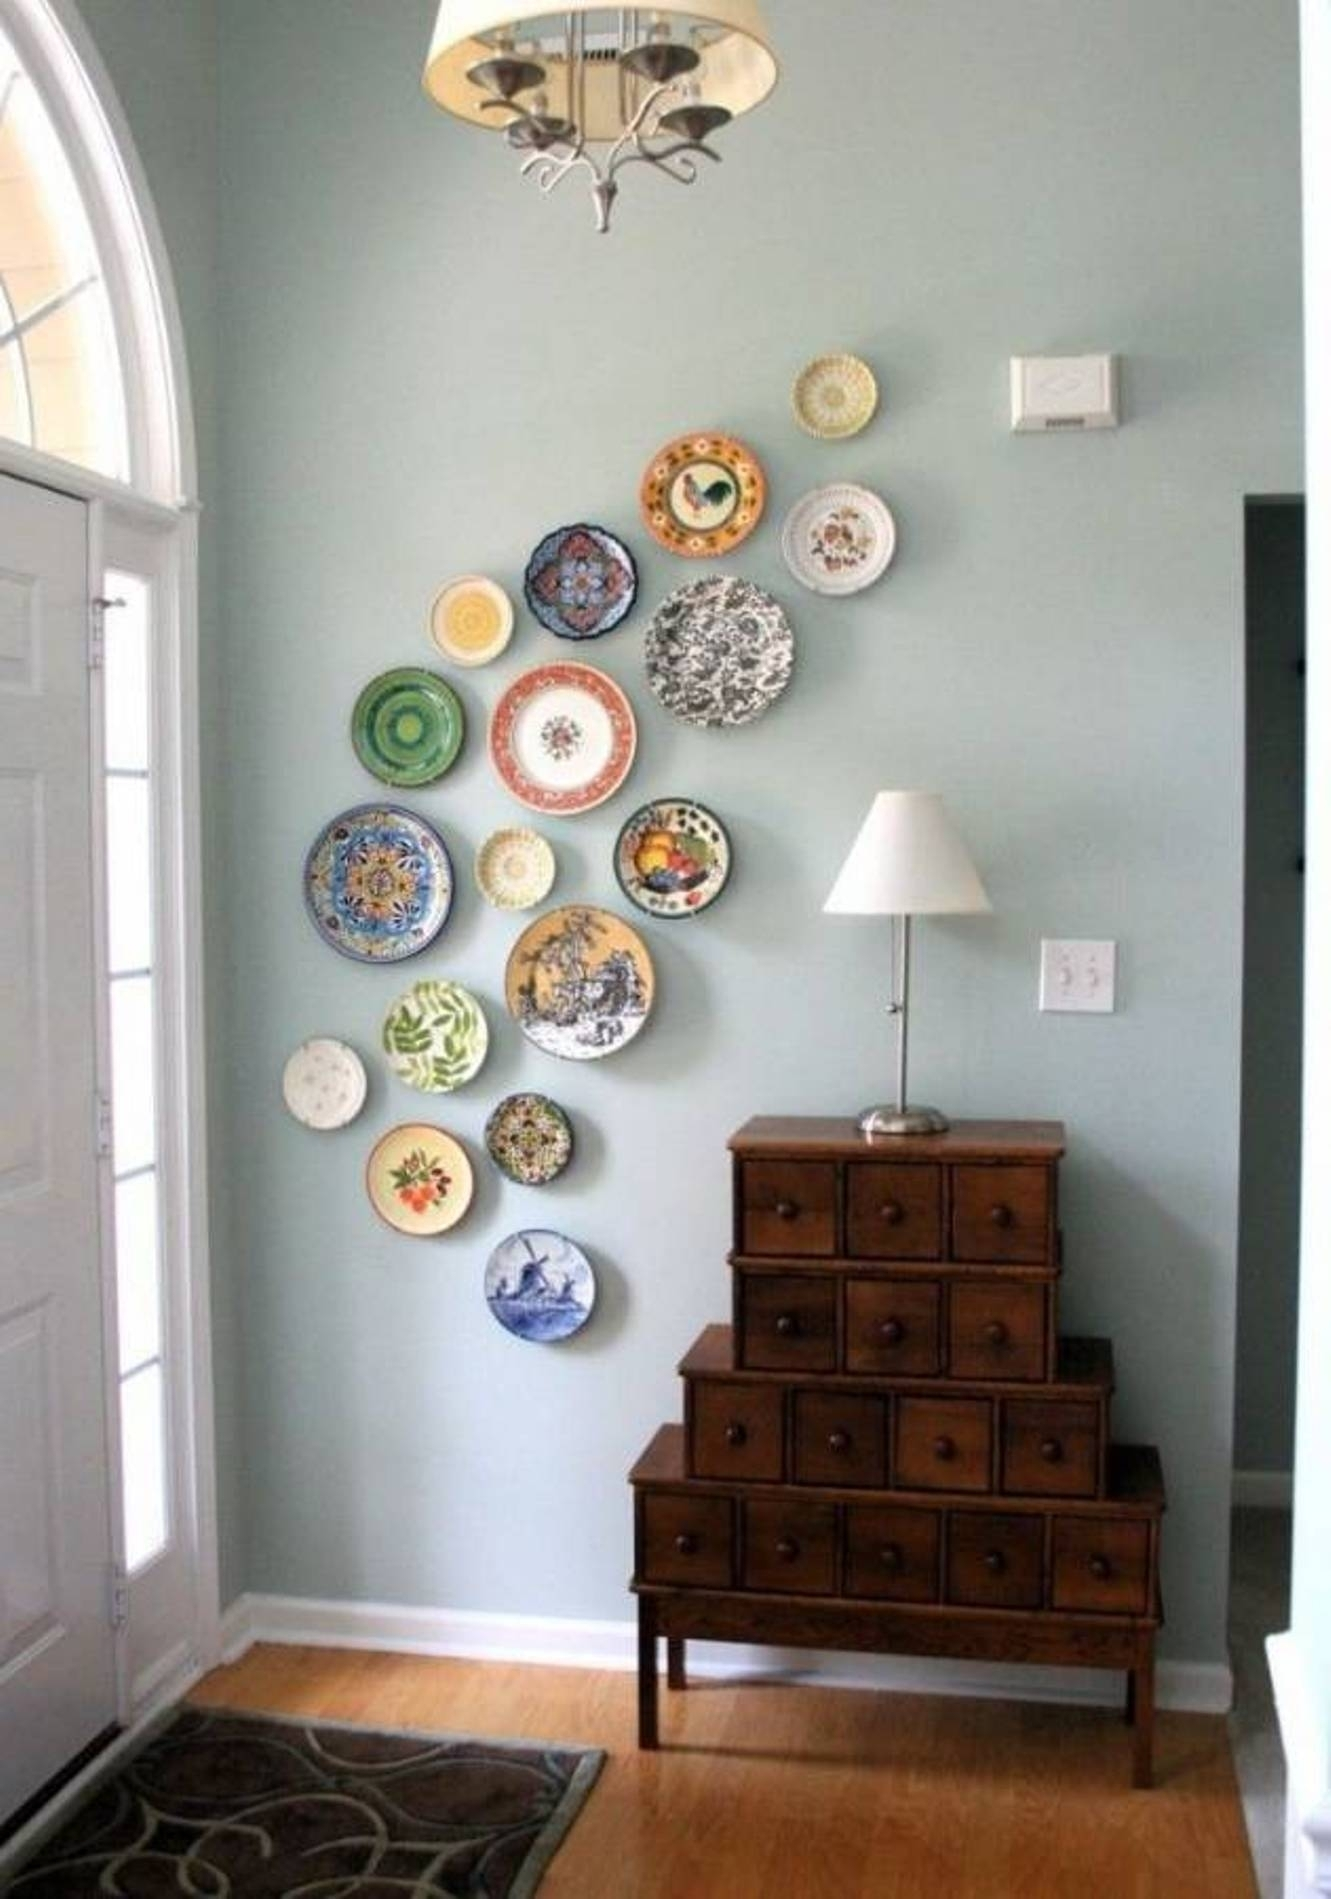 Unique Wall Art Ideas Images | Wall Decorations For 2018 Ceiling Medallion Wall Art (View 14 of 15)